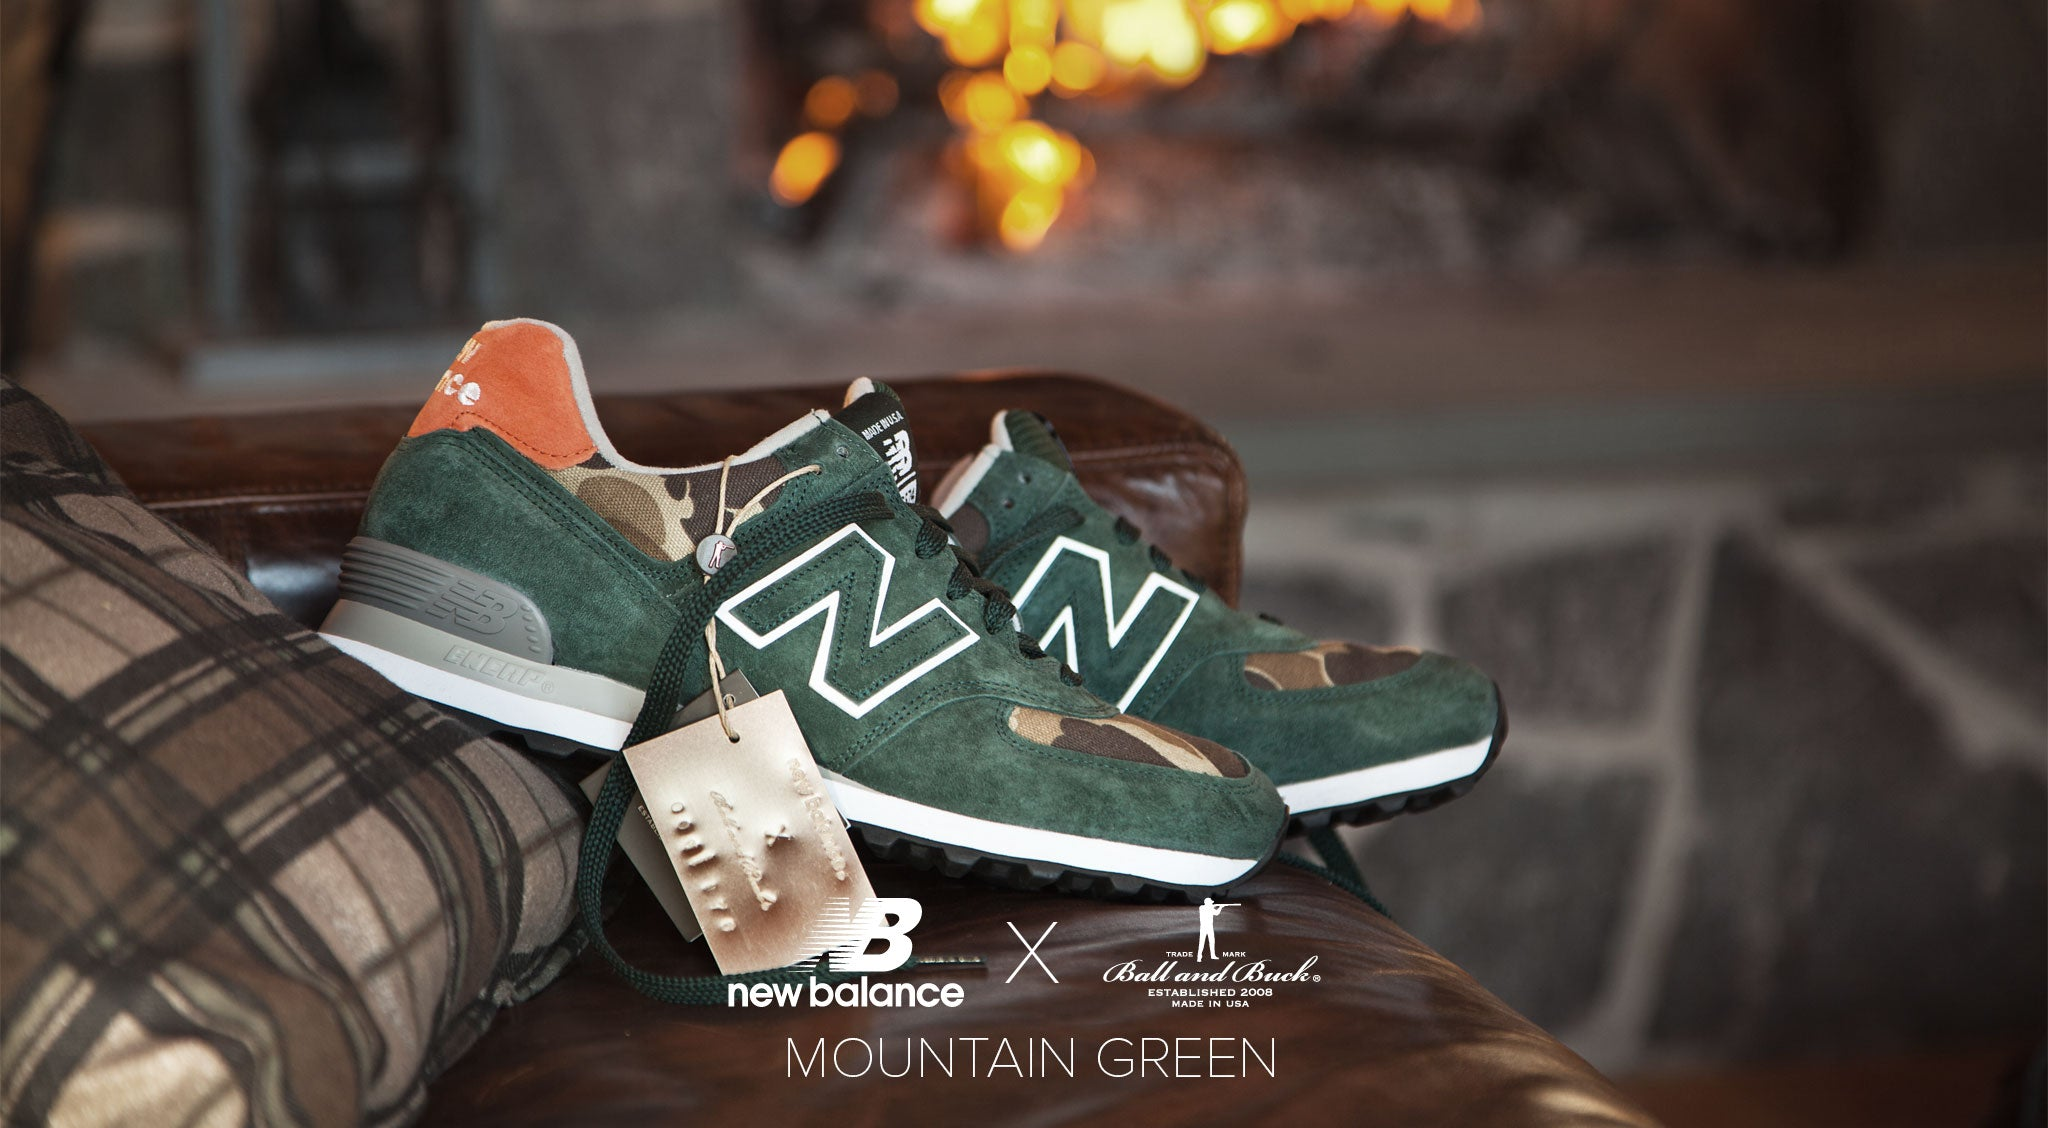 New Balance x Ball and Buck Mountain Green Lifestyle 02